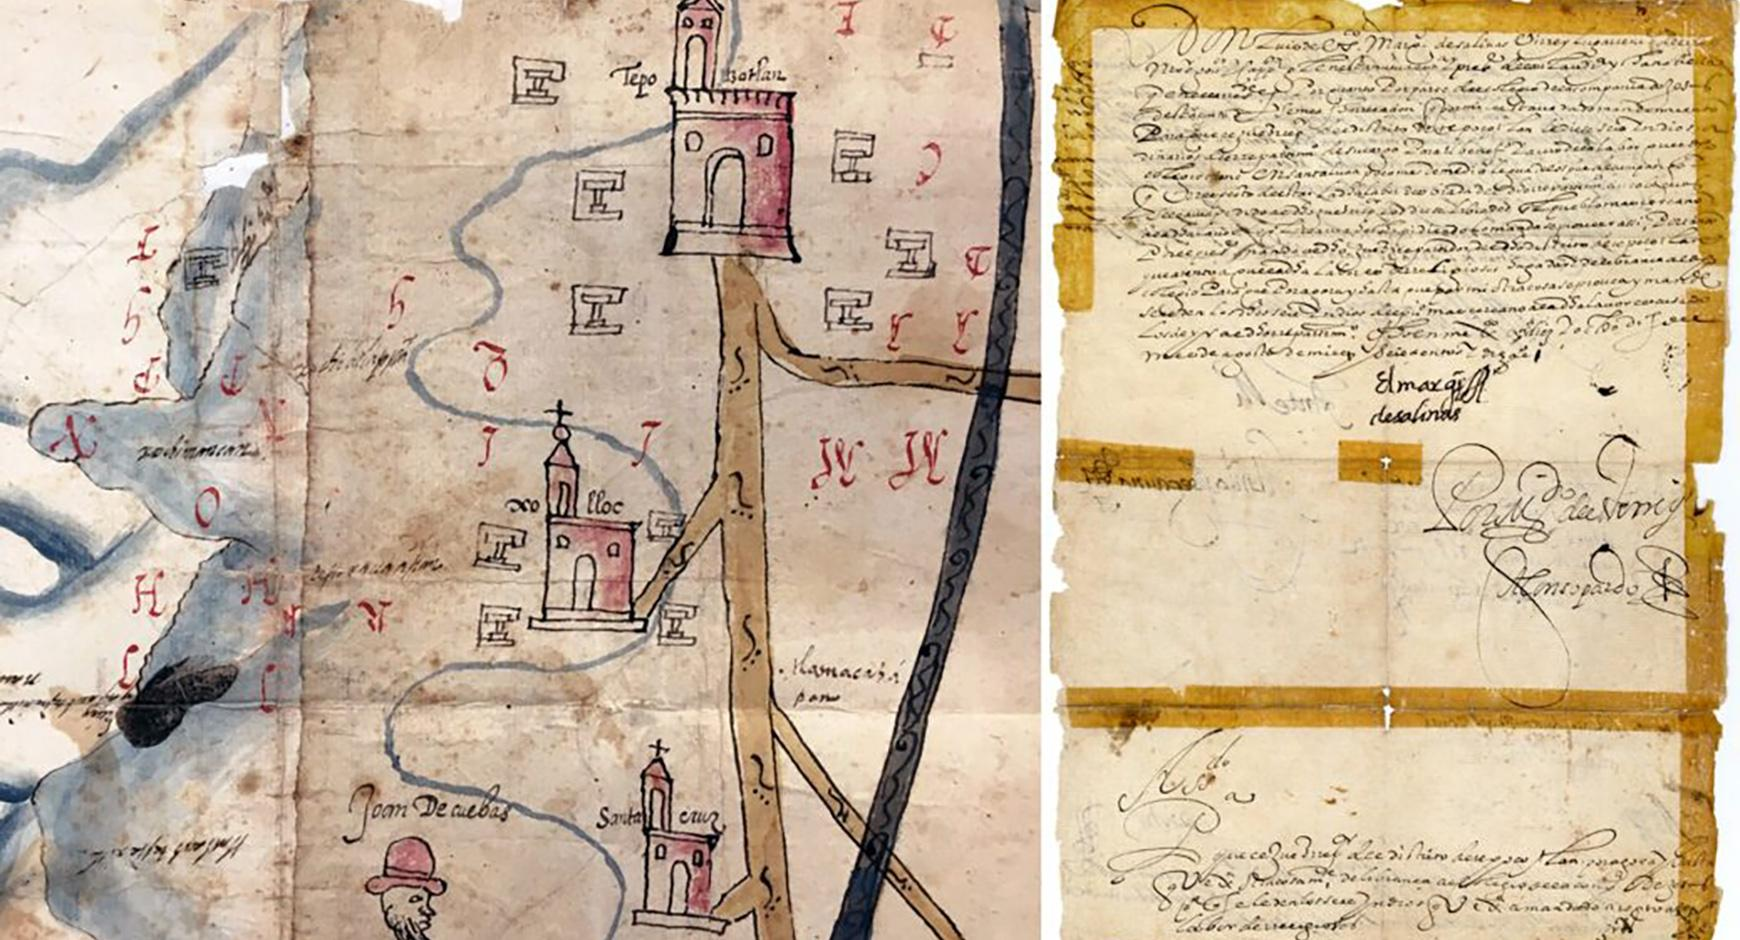 Pictorial representation of the lands owned by the Jesuit College of Tepozotlán, circa 1600–1625 (left). Viceregal decree ordering Tepozotlán's repartidor to provide the Jesuit college with Native laborers, August 18, 1610 (right). Edmundo O'Gorman Collec